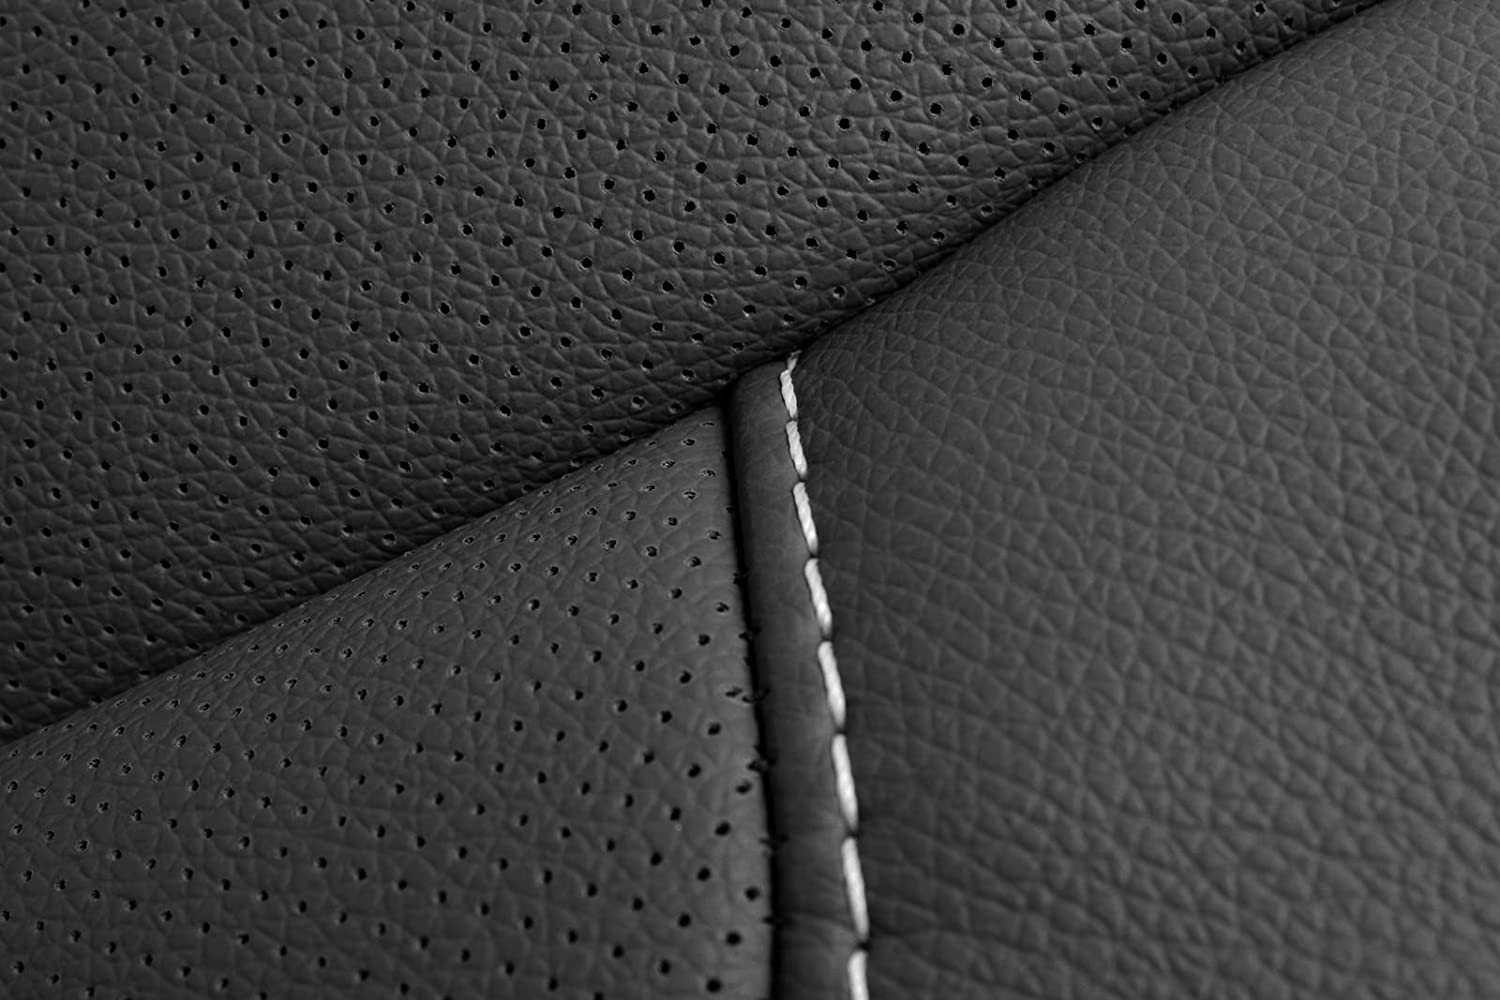 Jet Black Driver Side Bottom Replacement Seat Cover Perforated Richmond Auto Upholstery Compatible with 2015-2018 Chevy Silverado 1500, 2500, 3500 /& 2015-2018 GMC Sierra 1500, 2500, 3500